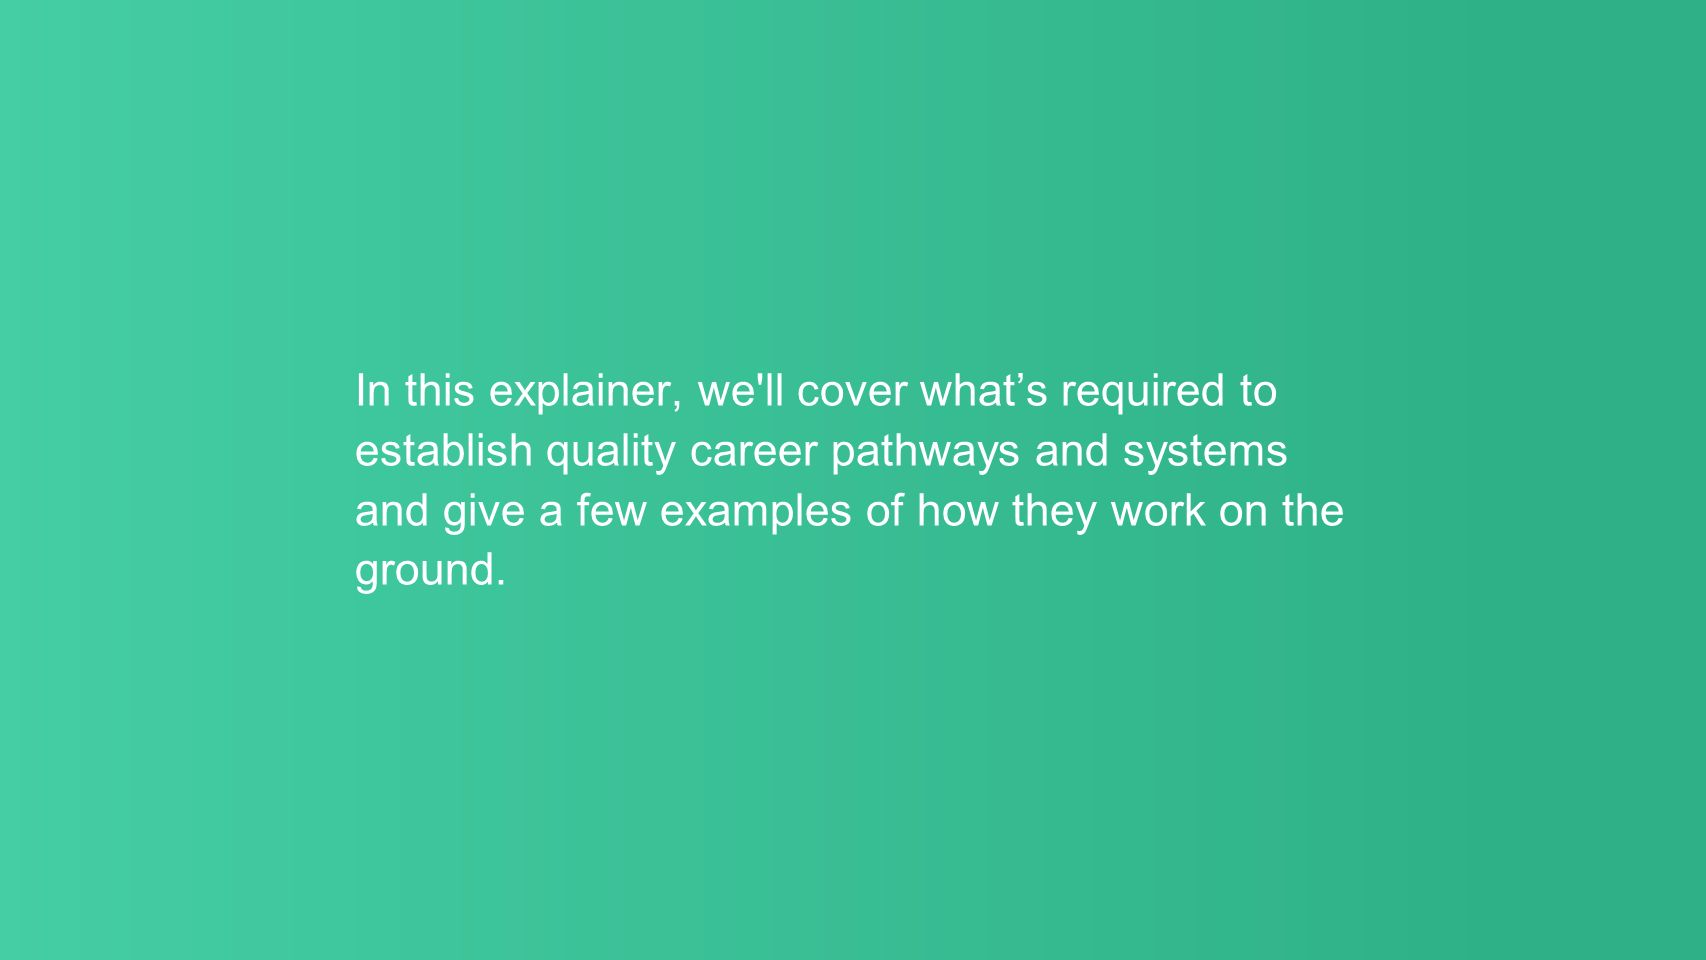 In this explainer, we ll cover what's required to establish quality career pathways and systems and give a few examples of how they work on the ground.